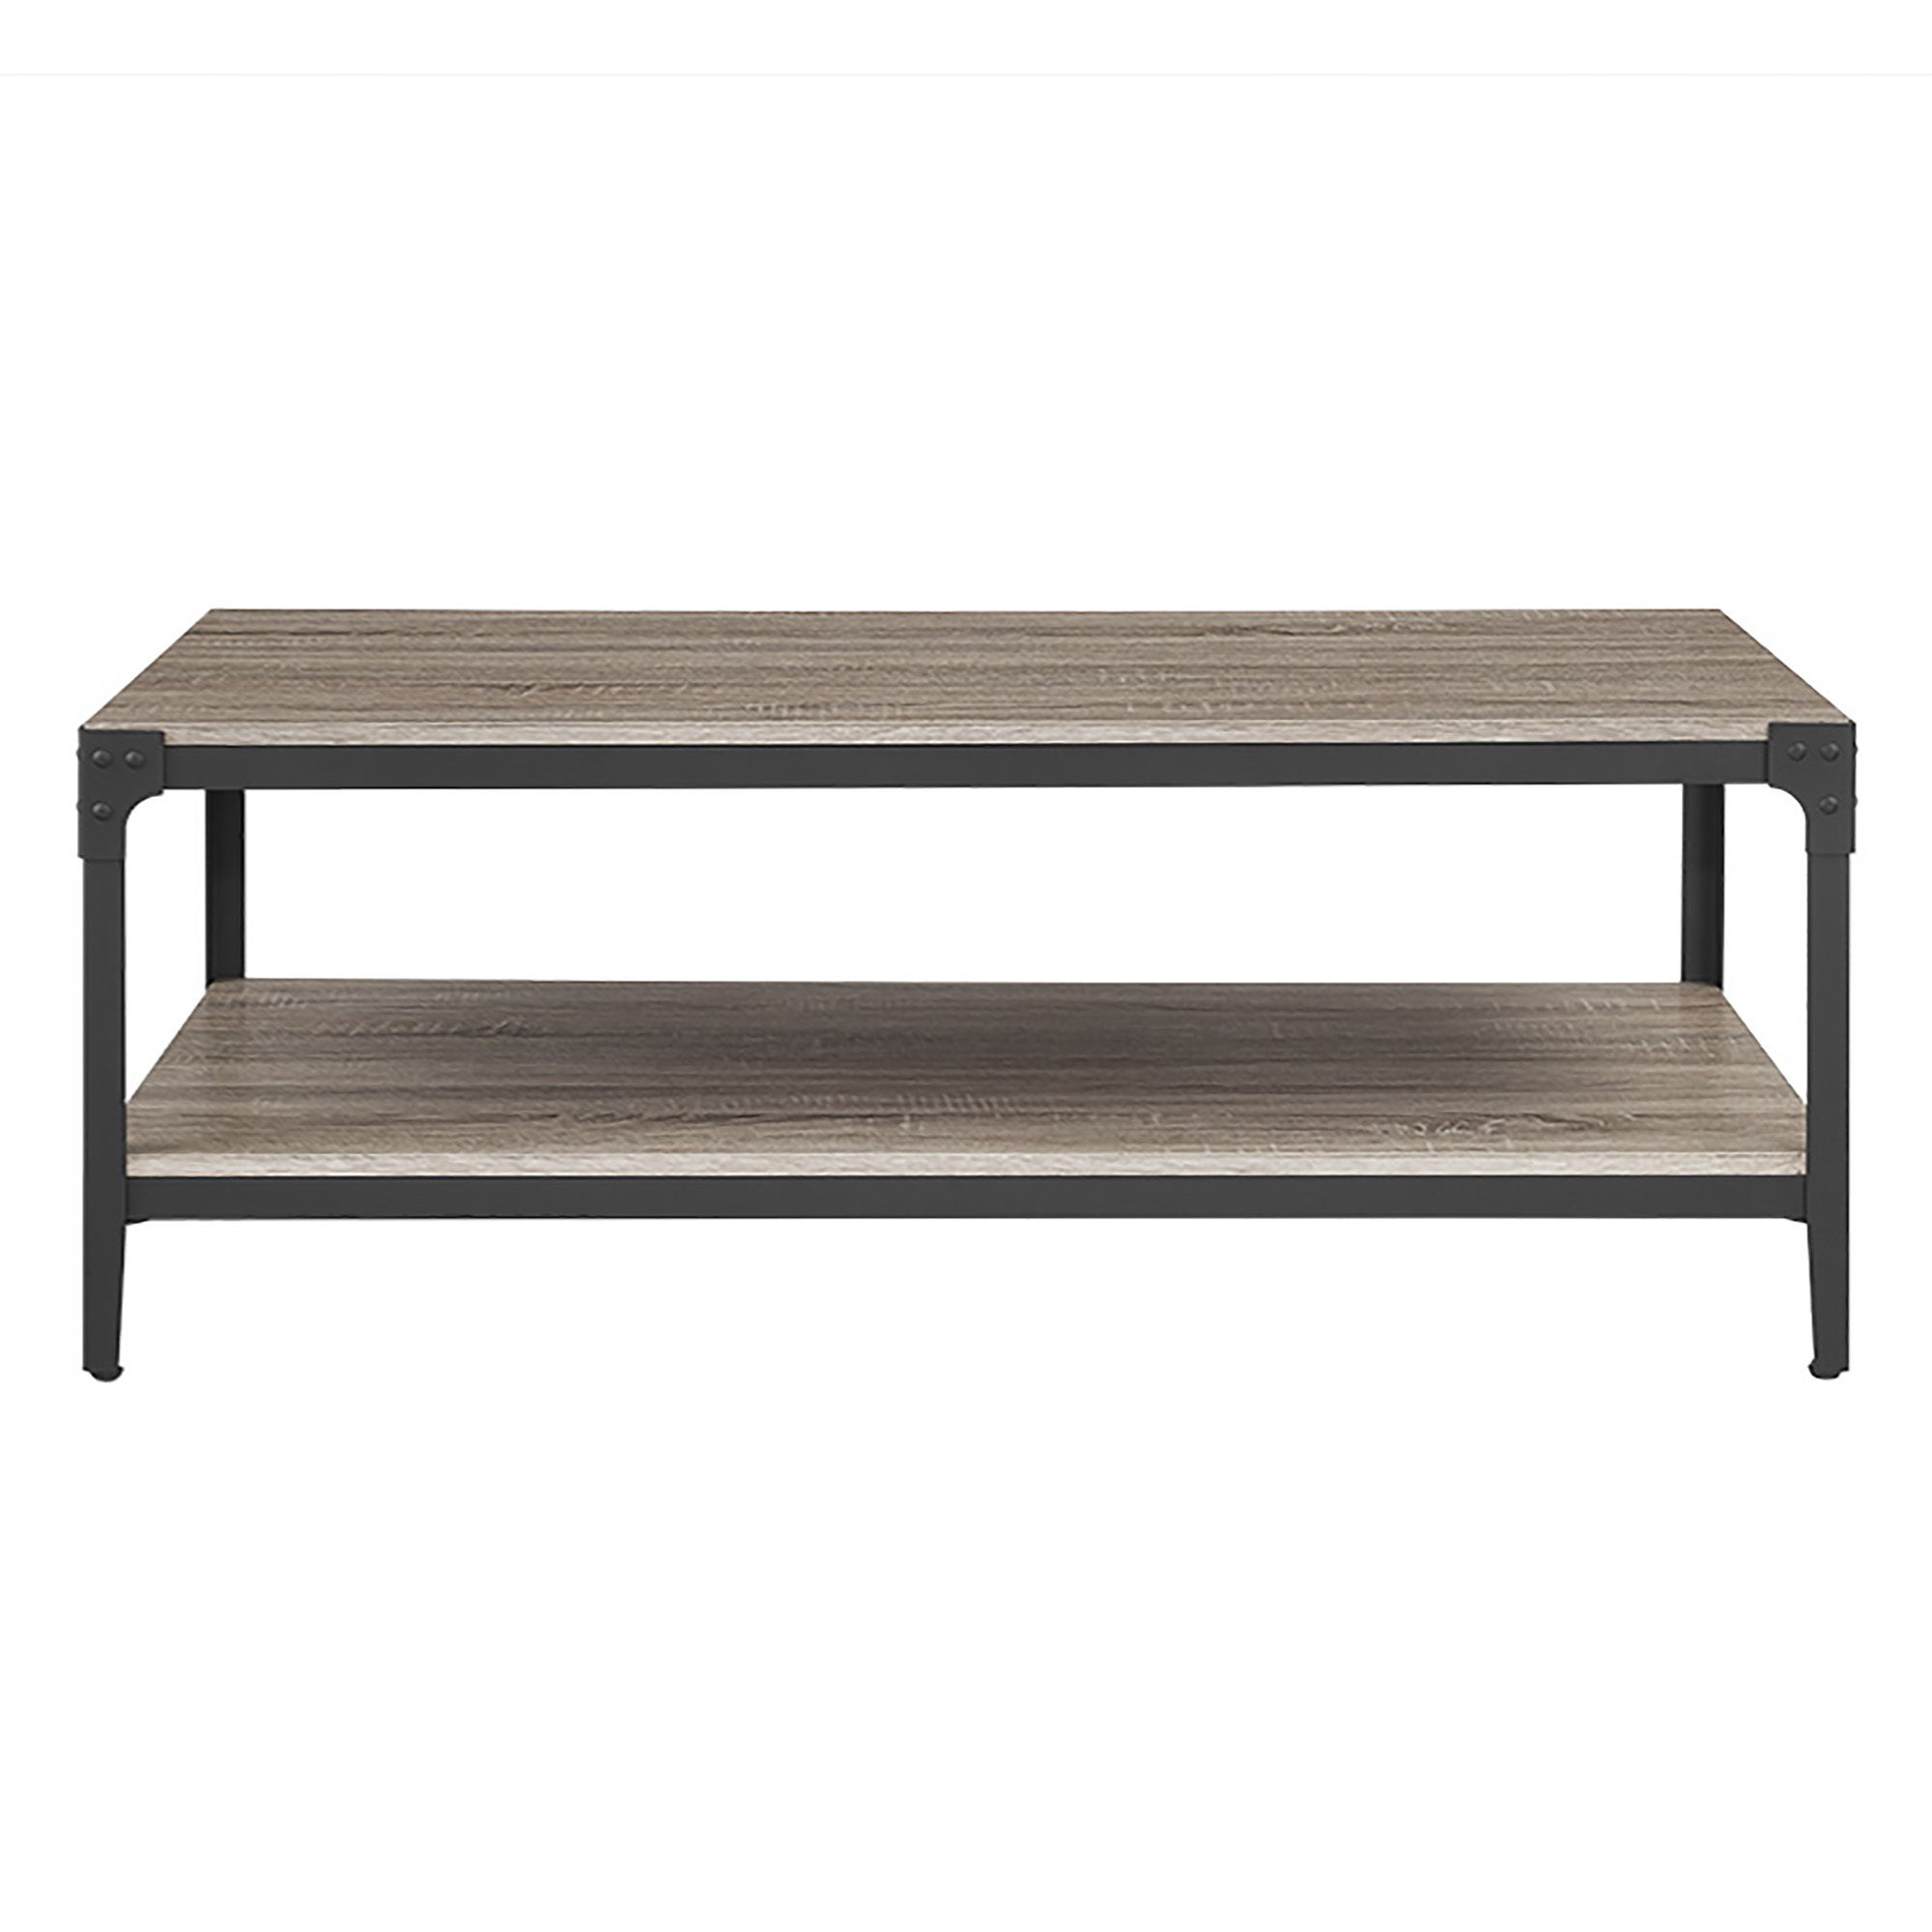 48 inch Rustic Angle Iron Coffee Table Driftwood Free Shipping